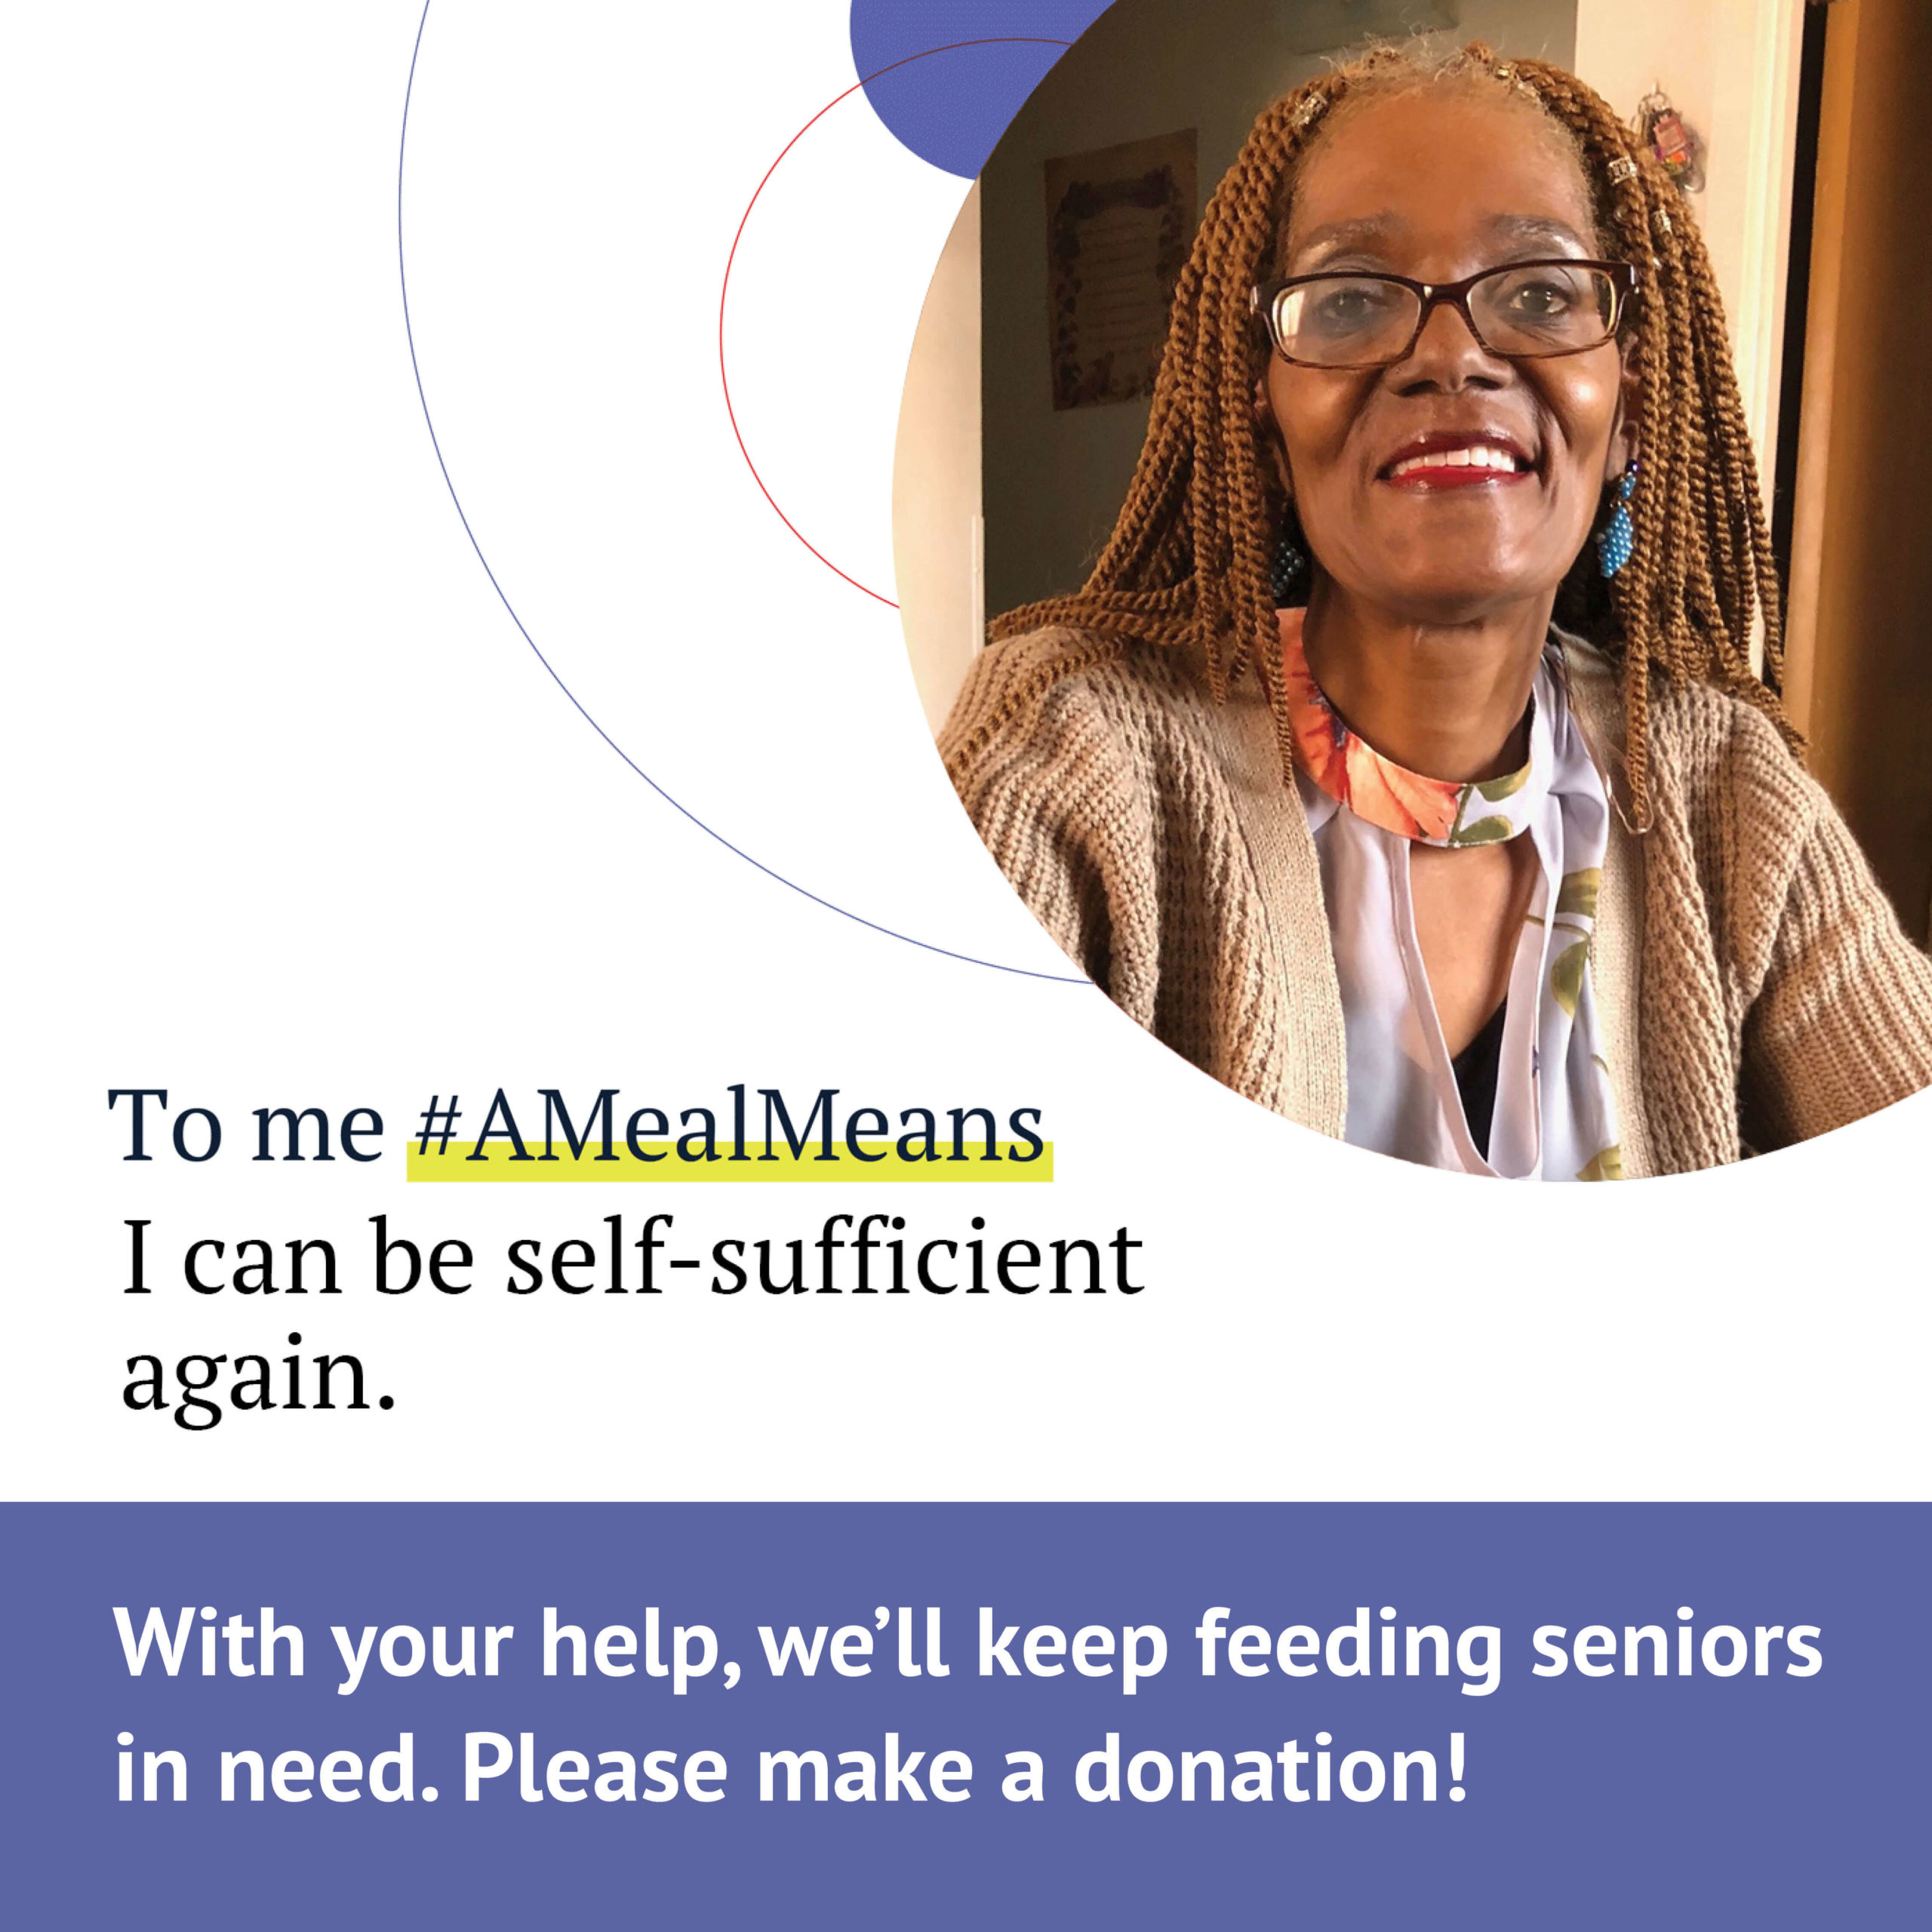 With your help, we'll keep feeding seniors in need. Please make a donation!